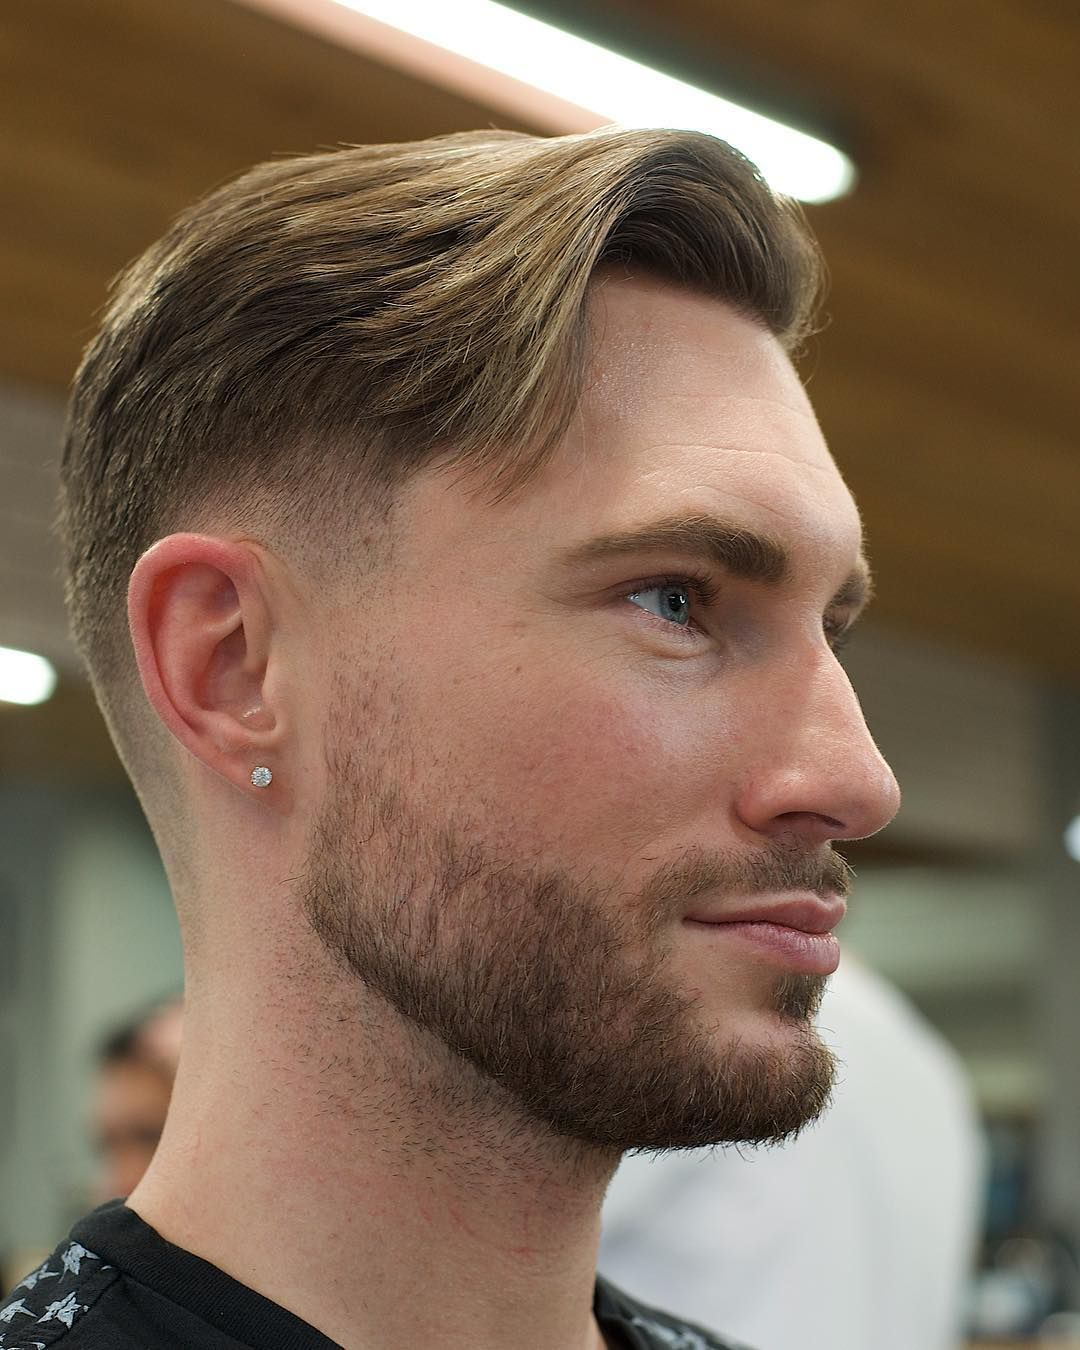 Haircuts for men over 40 medium length haircuts for men  update  hair  pinterest